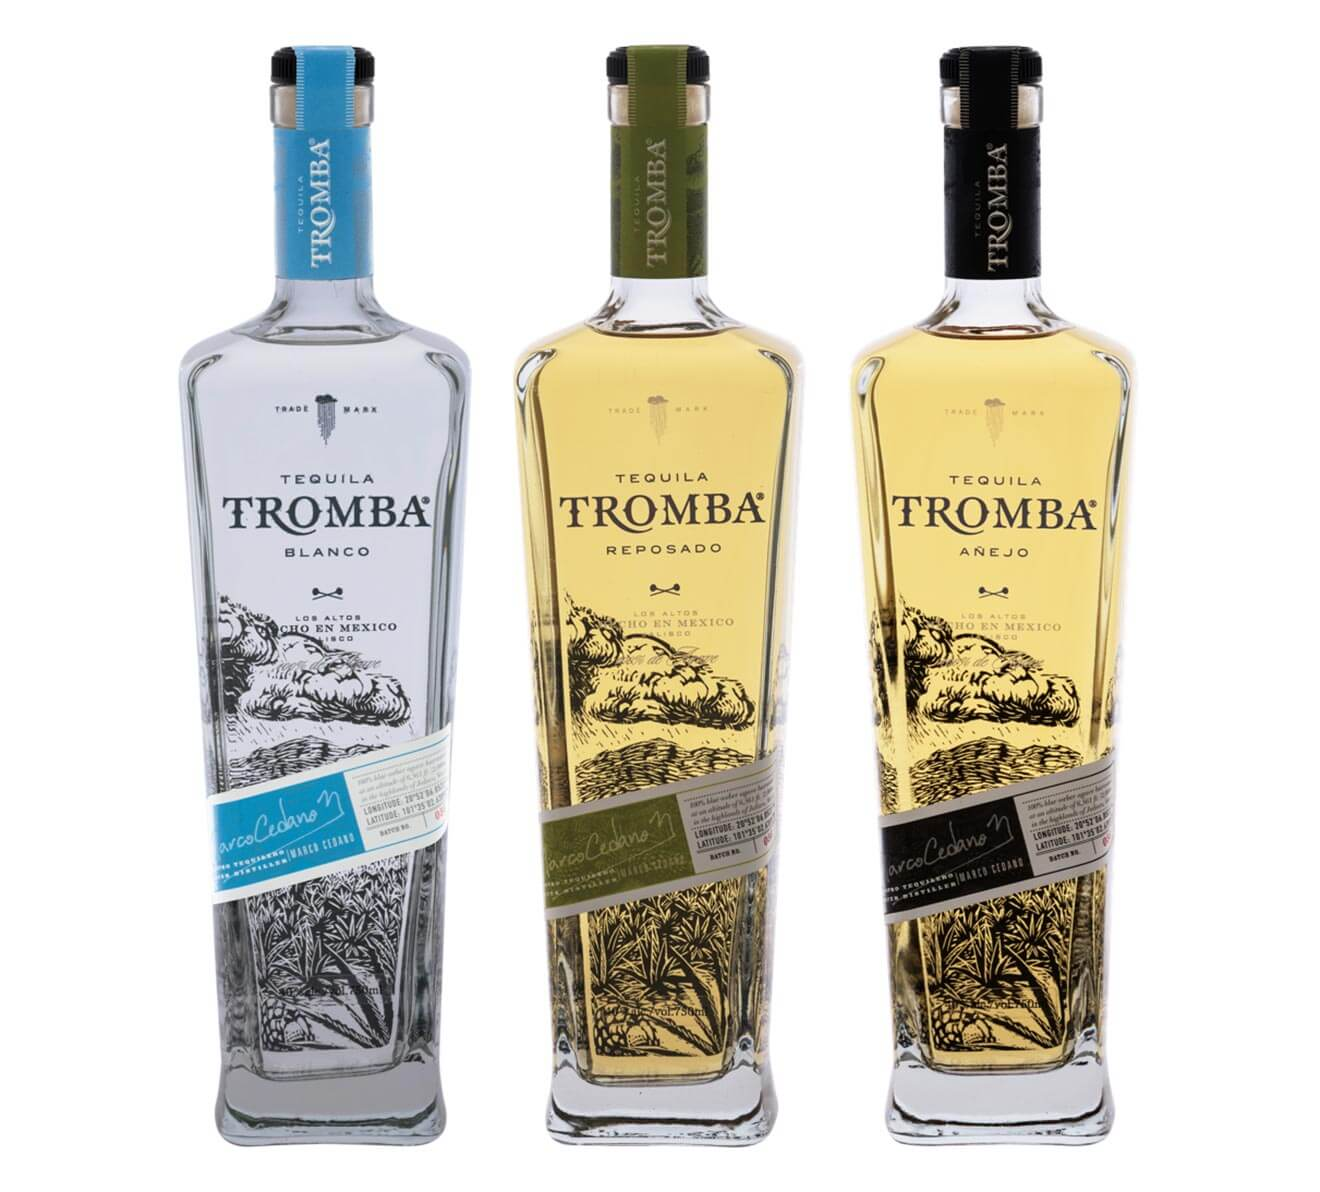 Tromba Tequila bottle varieities on white